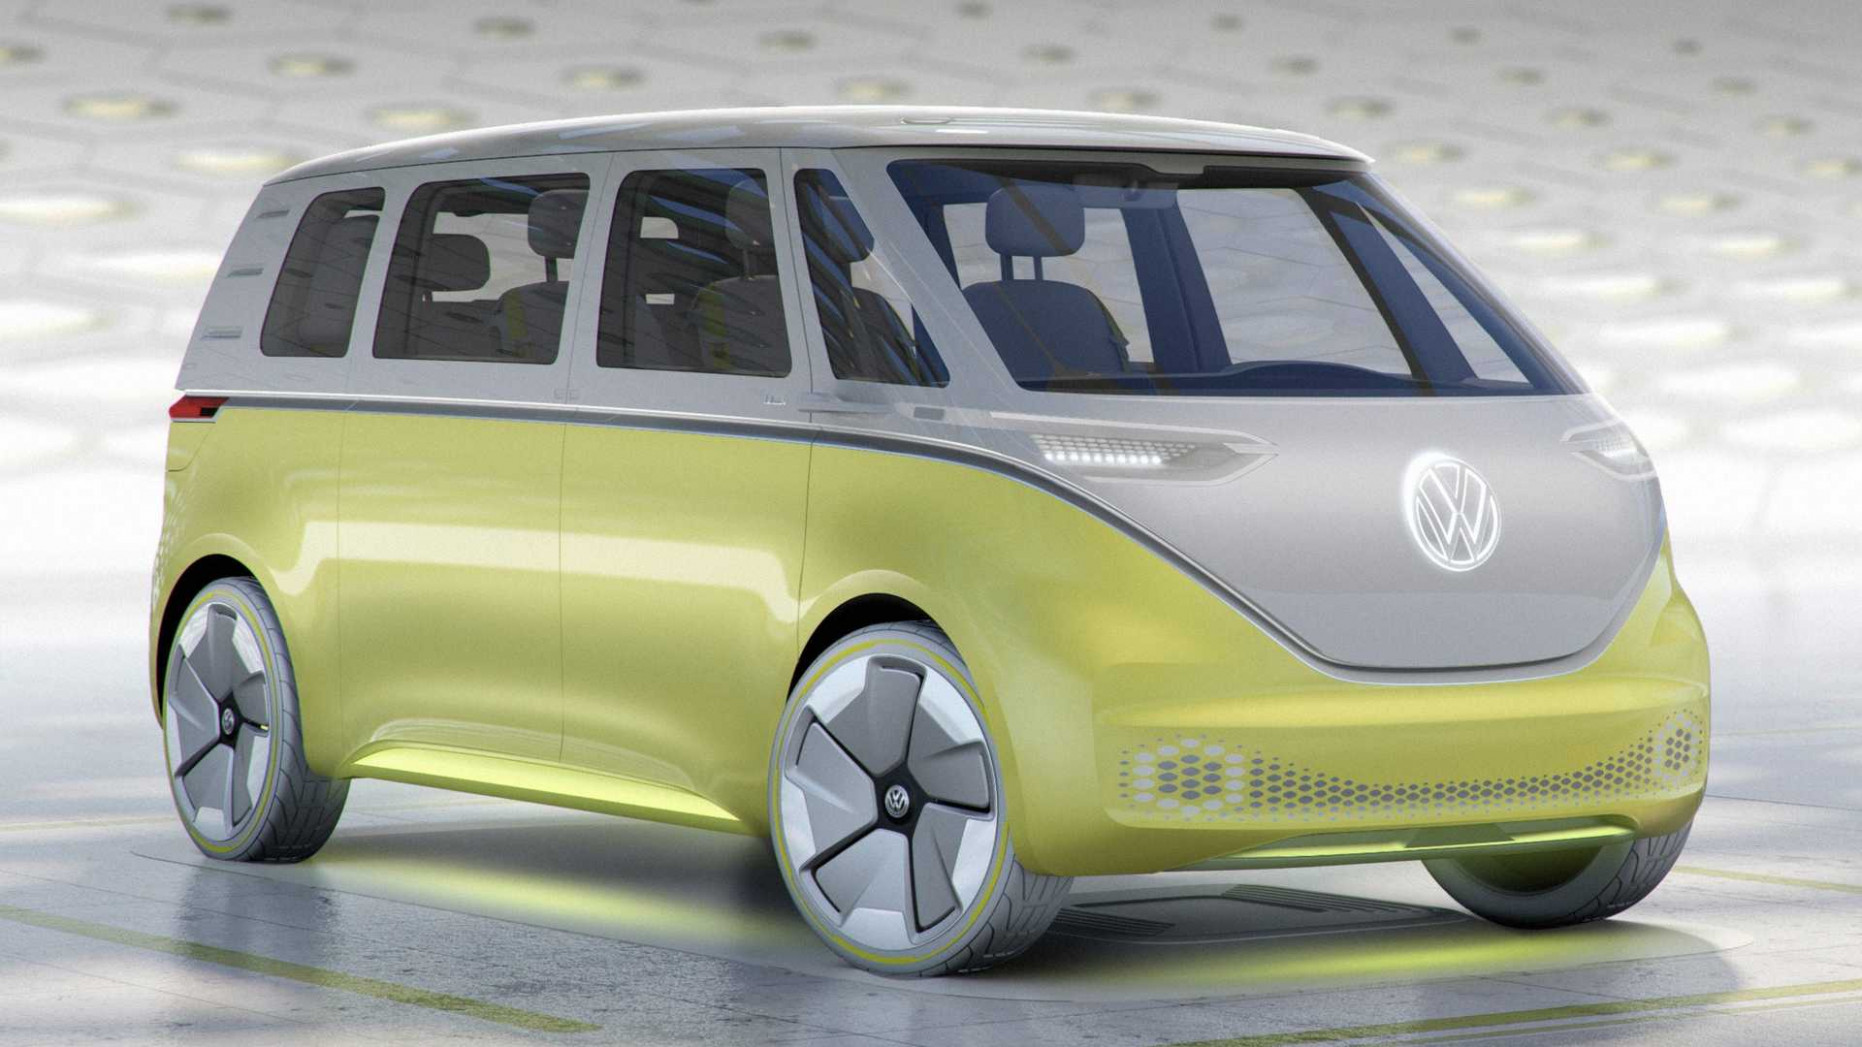 VW Touran Could Be Indirectly Replaced By ID Buzz Electric Van